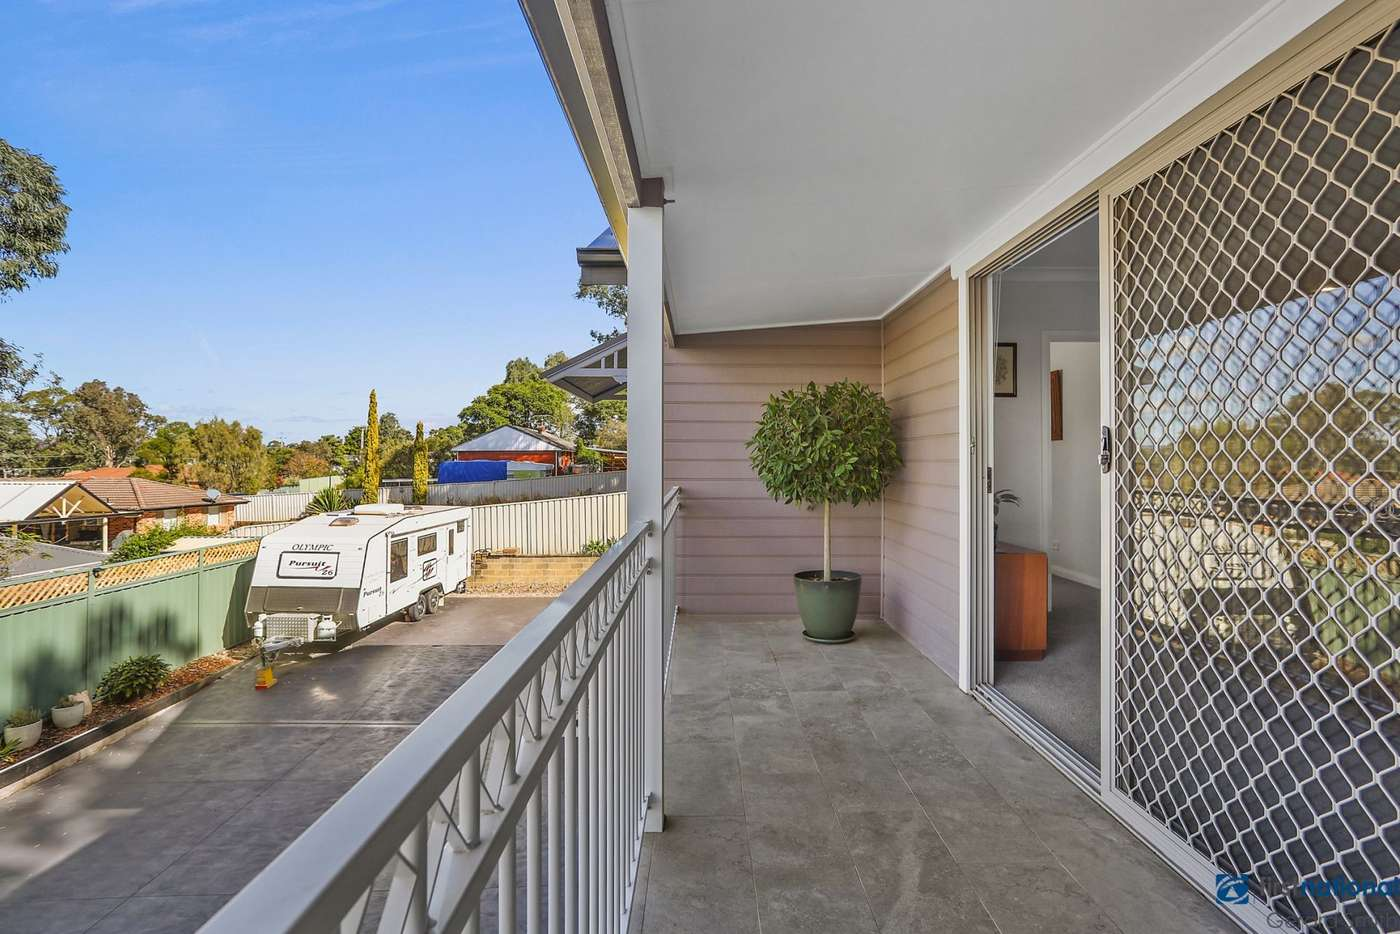 Seventh view of Homely house listing, 69 Moorland Road, Tahmoor NSW 2573